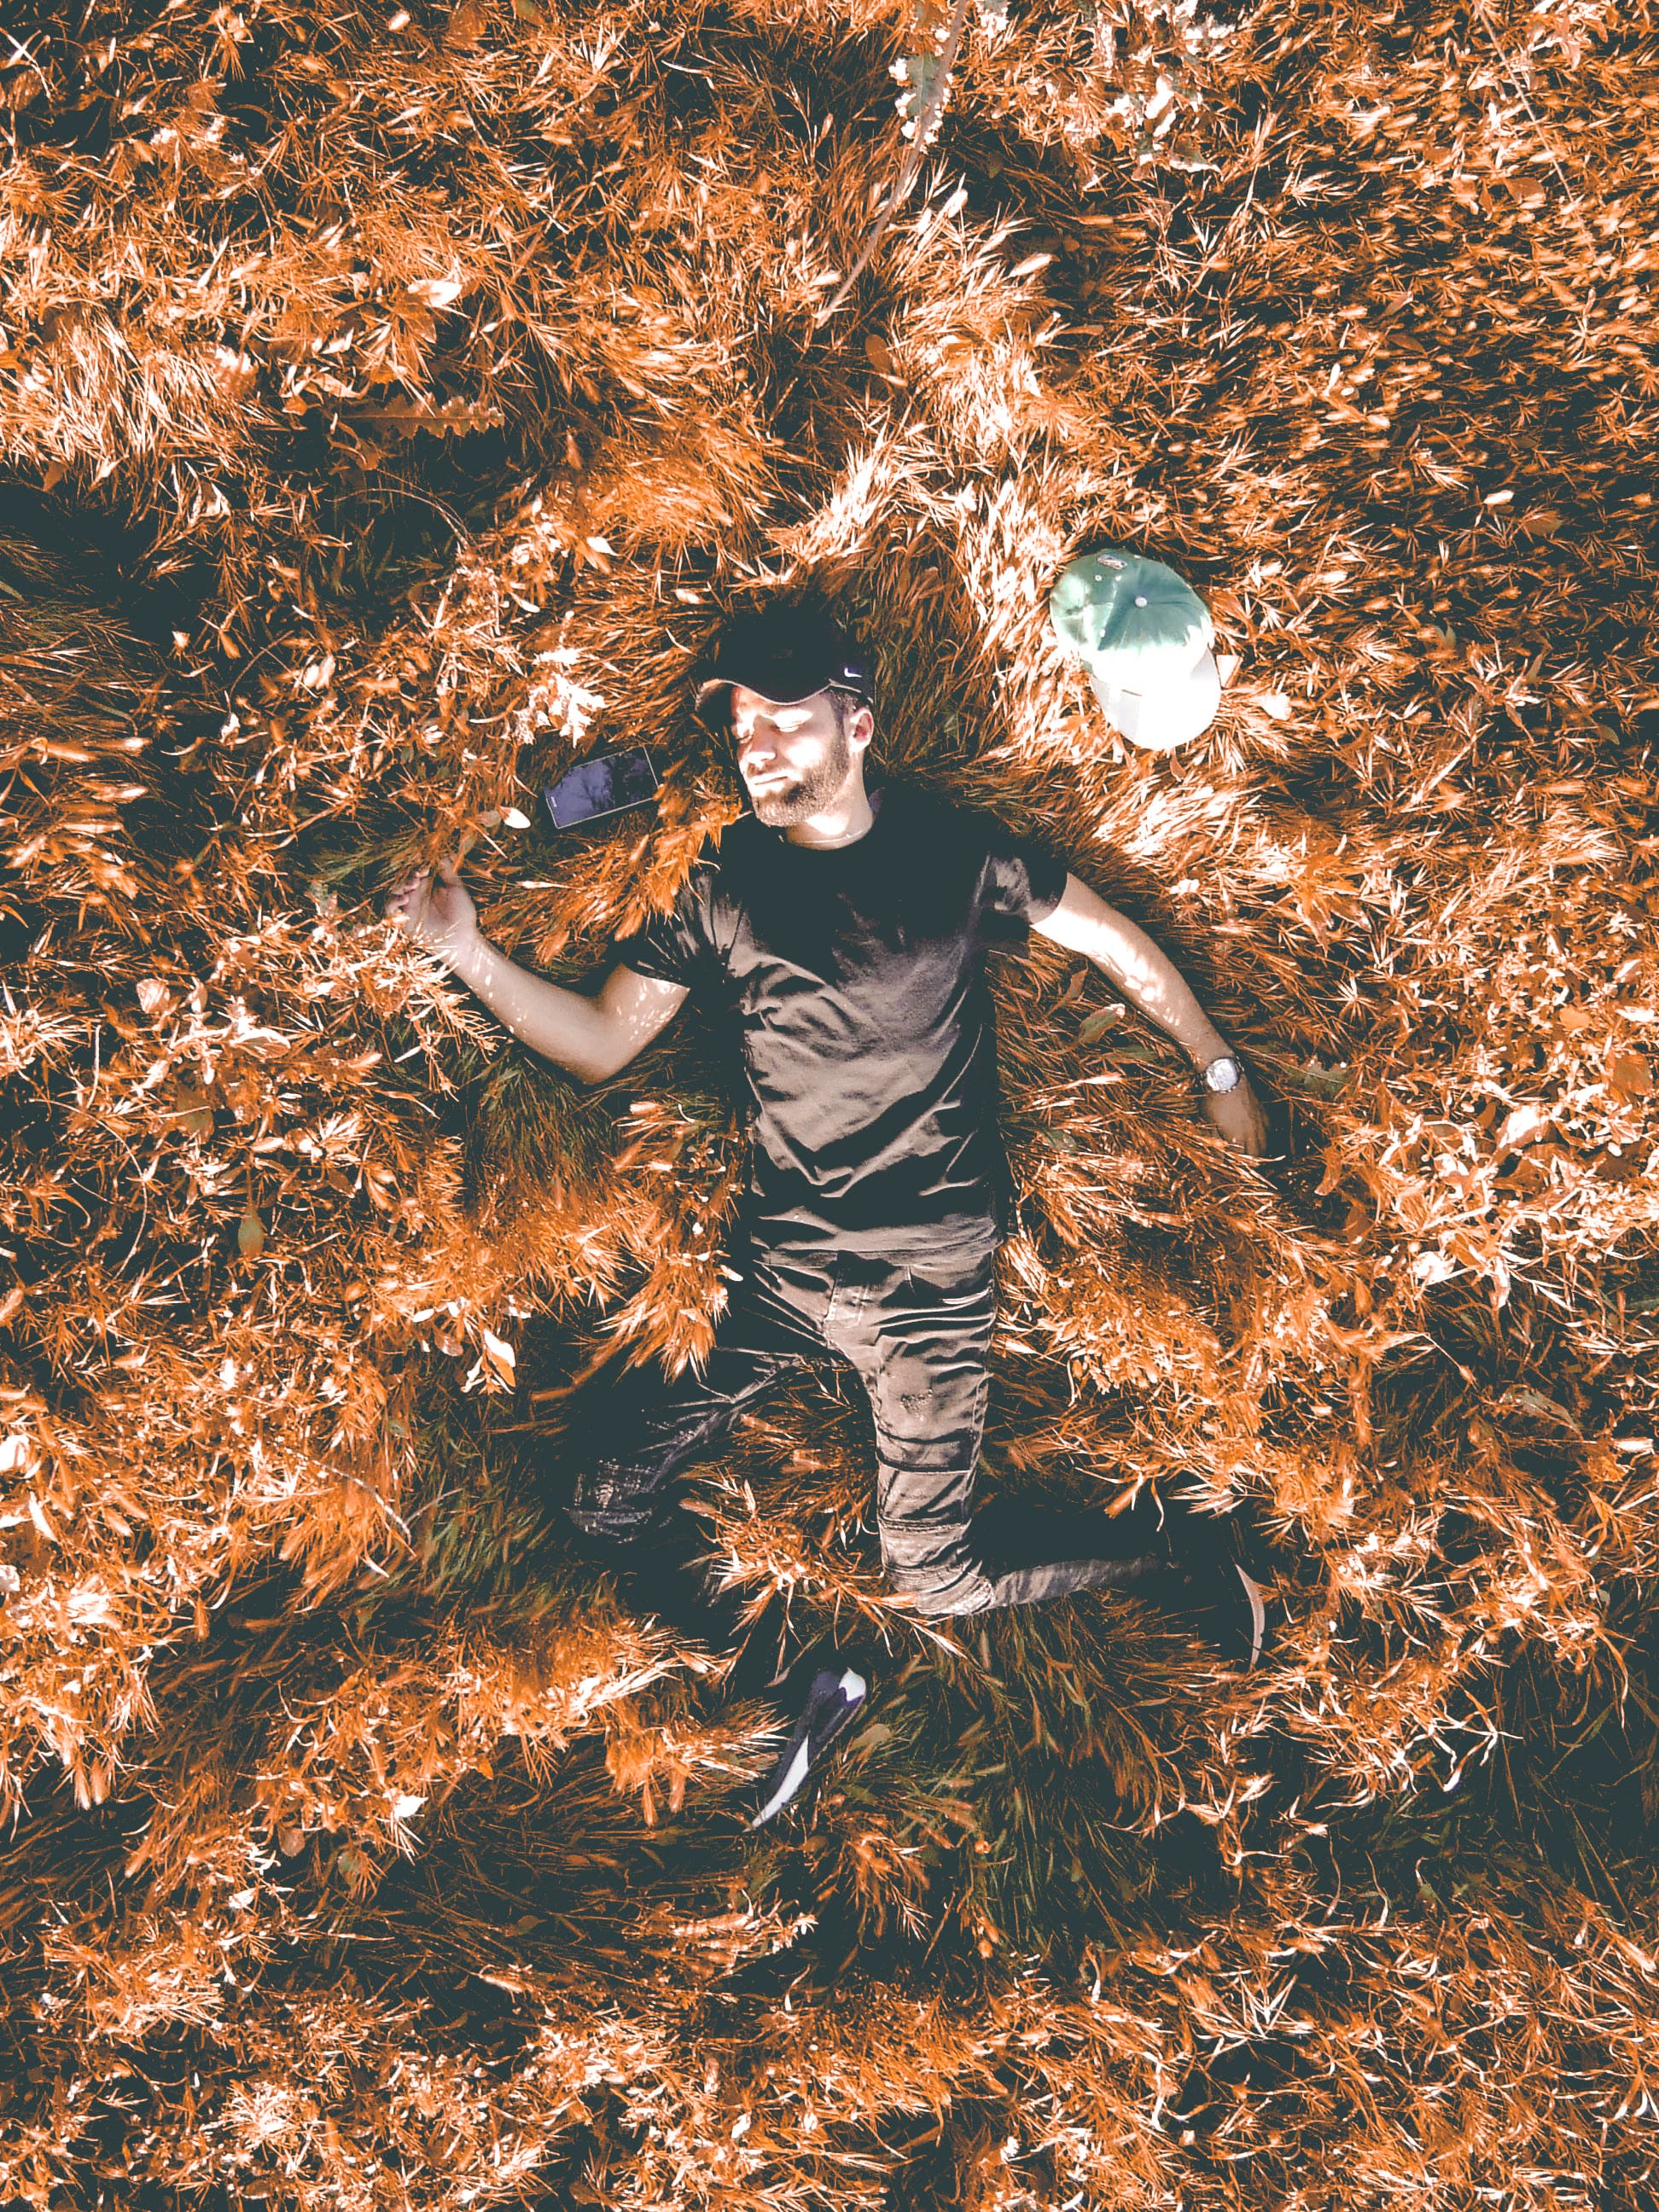 Man in Black Crew-neck Shirt and Black Pants Laying in Brown Dry Leaf